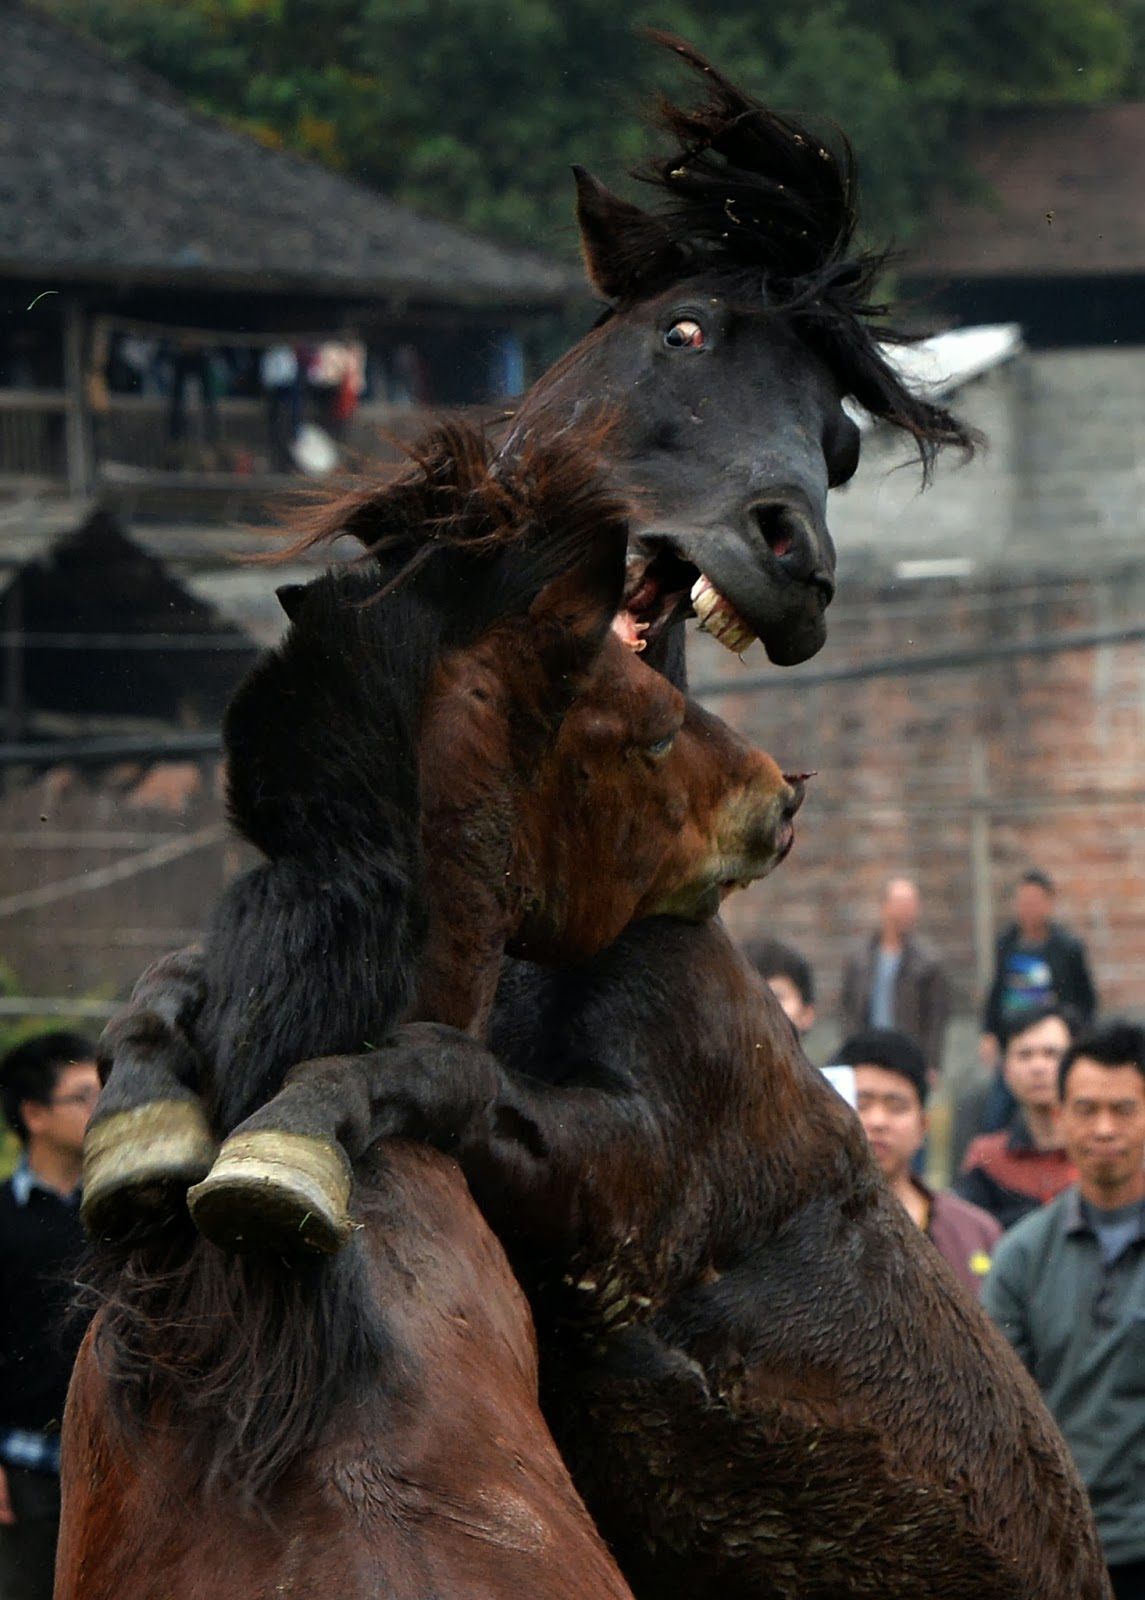 Animal, China, Competition, Guangxi, Horse, Horse Fighting, Lifestyle, Lunar, Lunar New Year, Miao Minority, New Year, Rights, Sports, Stallions, Tradition, Wildlife, Year of Horse,